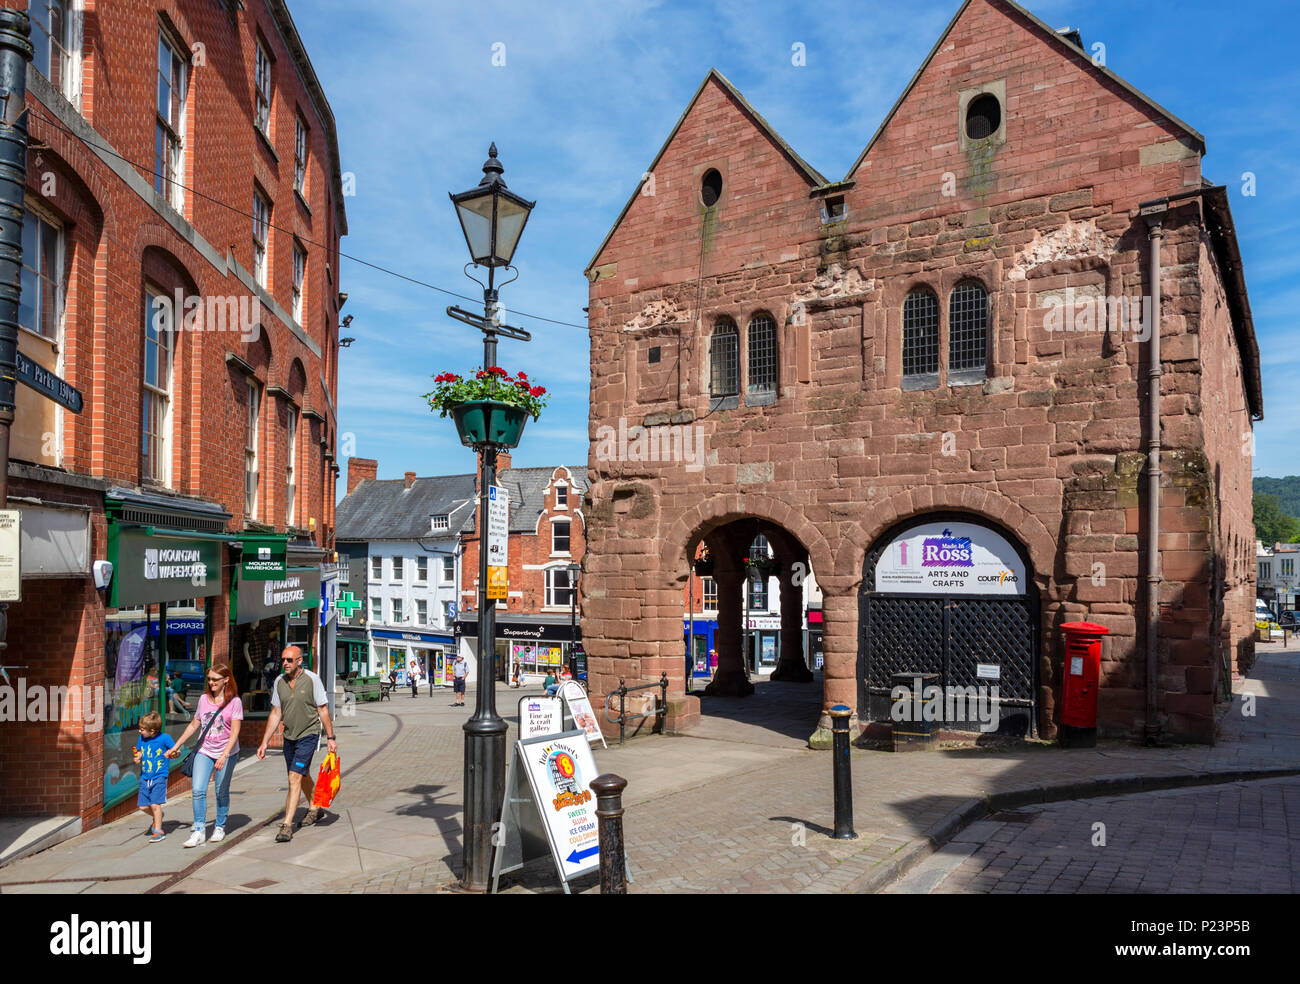 The Market House and shops in the town centre, Ross-on-Wye, Herefordshire, England, UK - Stock Image